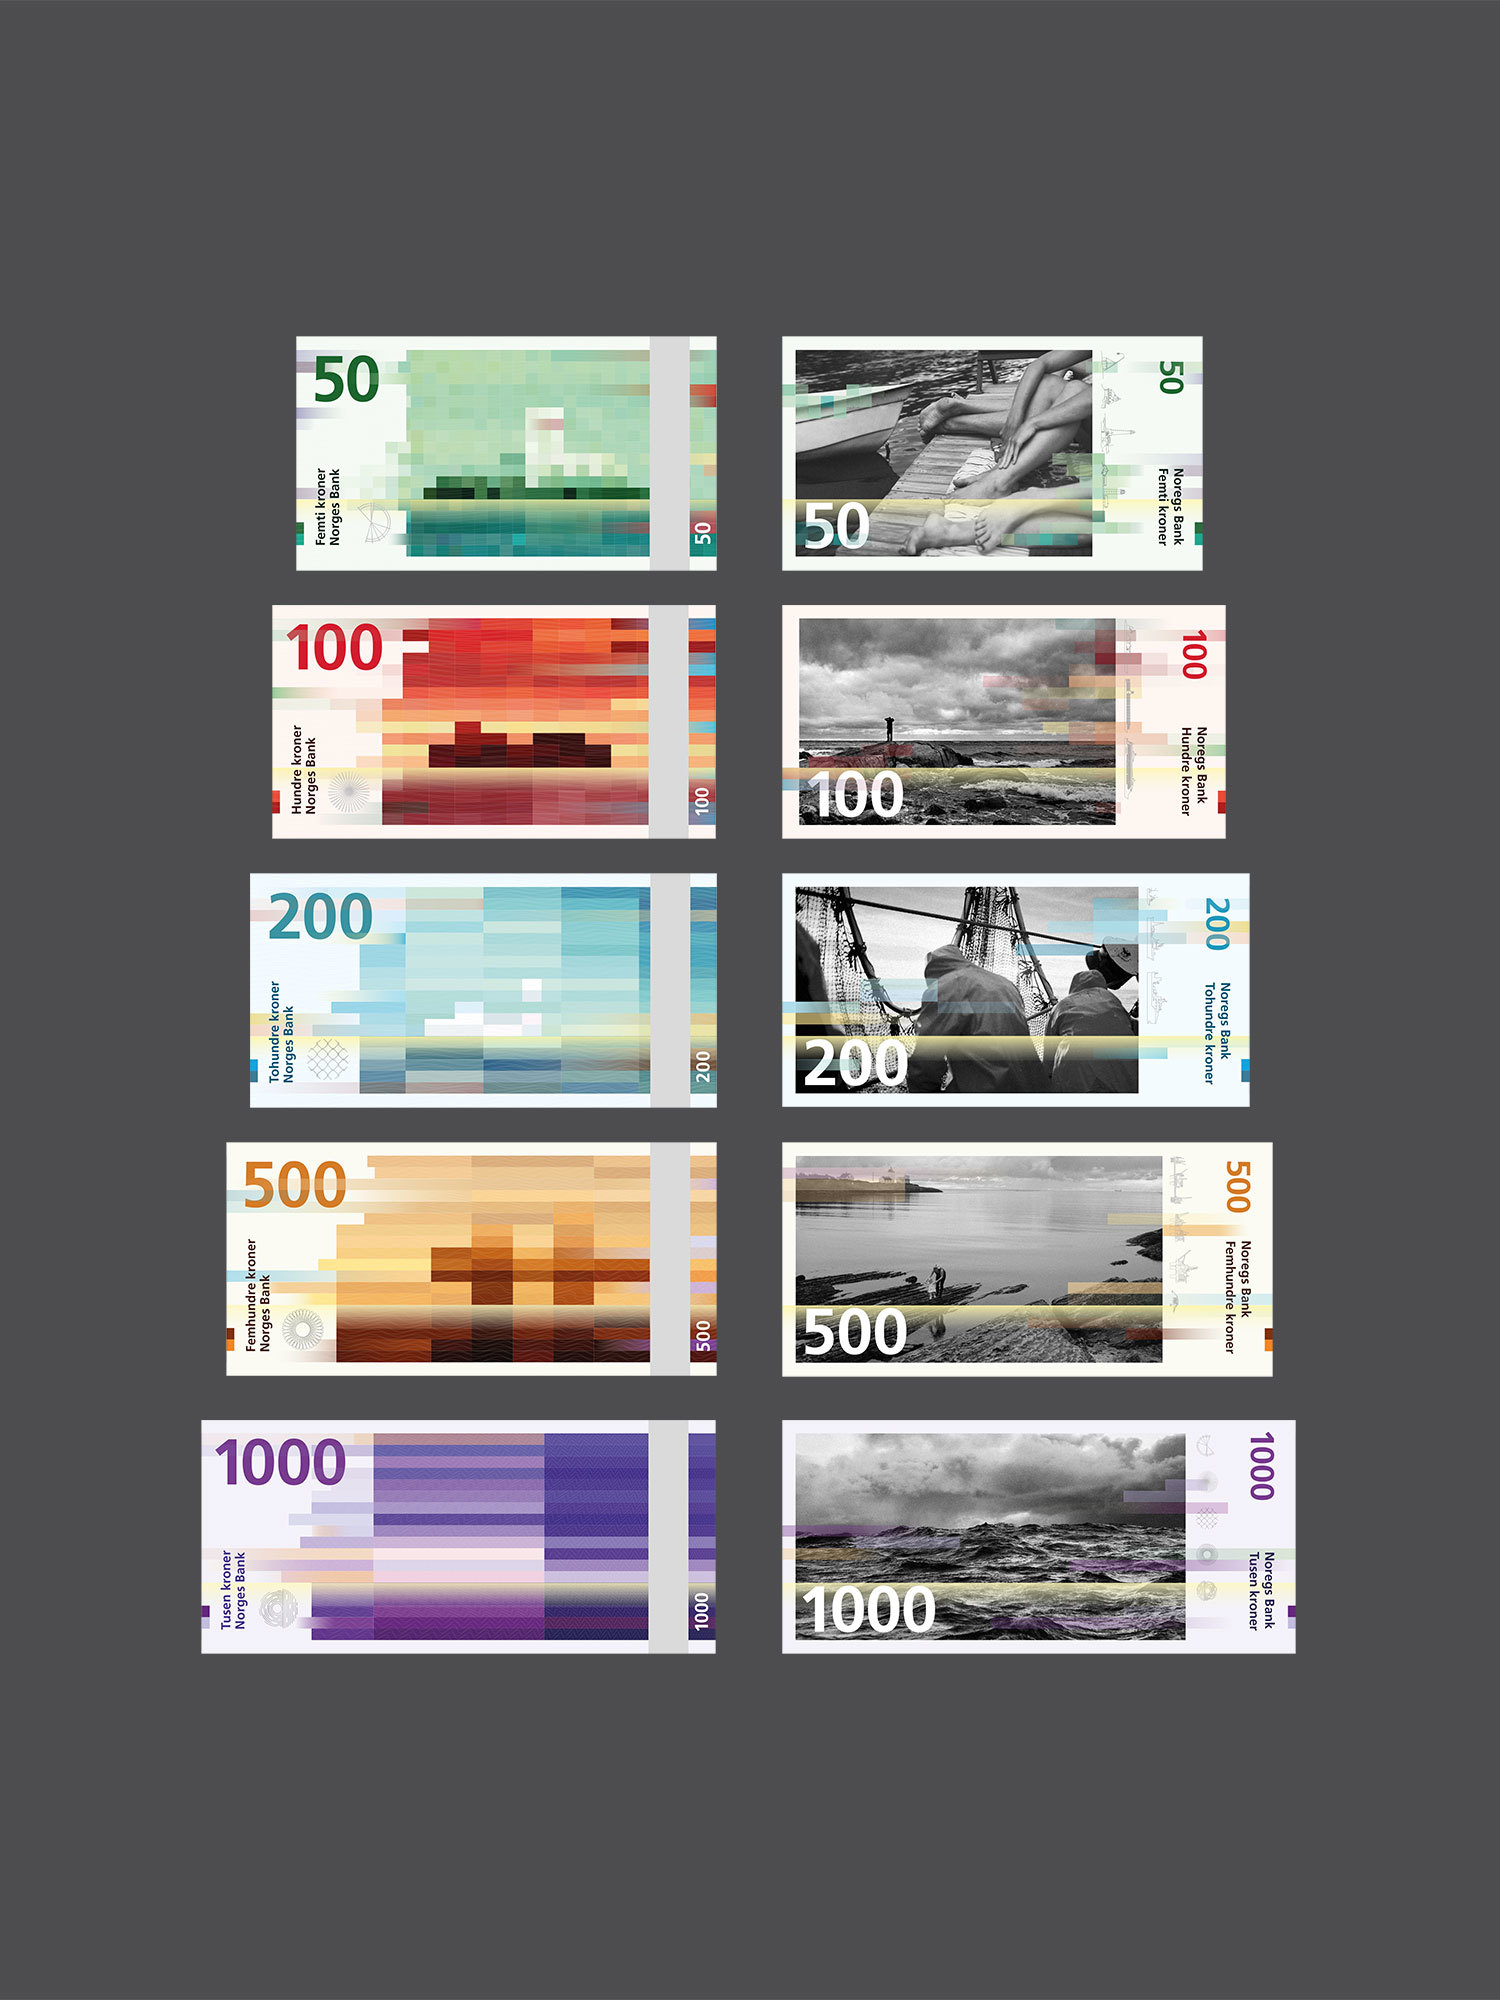 renders of currency of varying size and bill amount